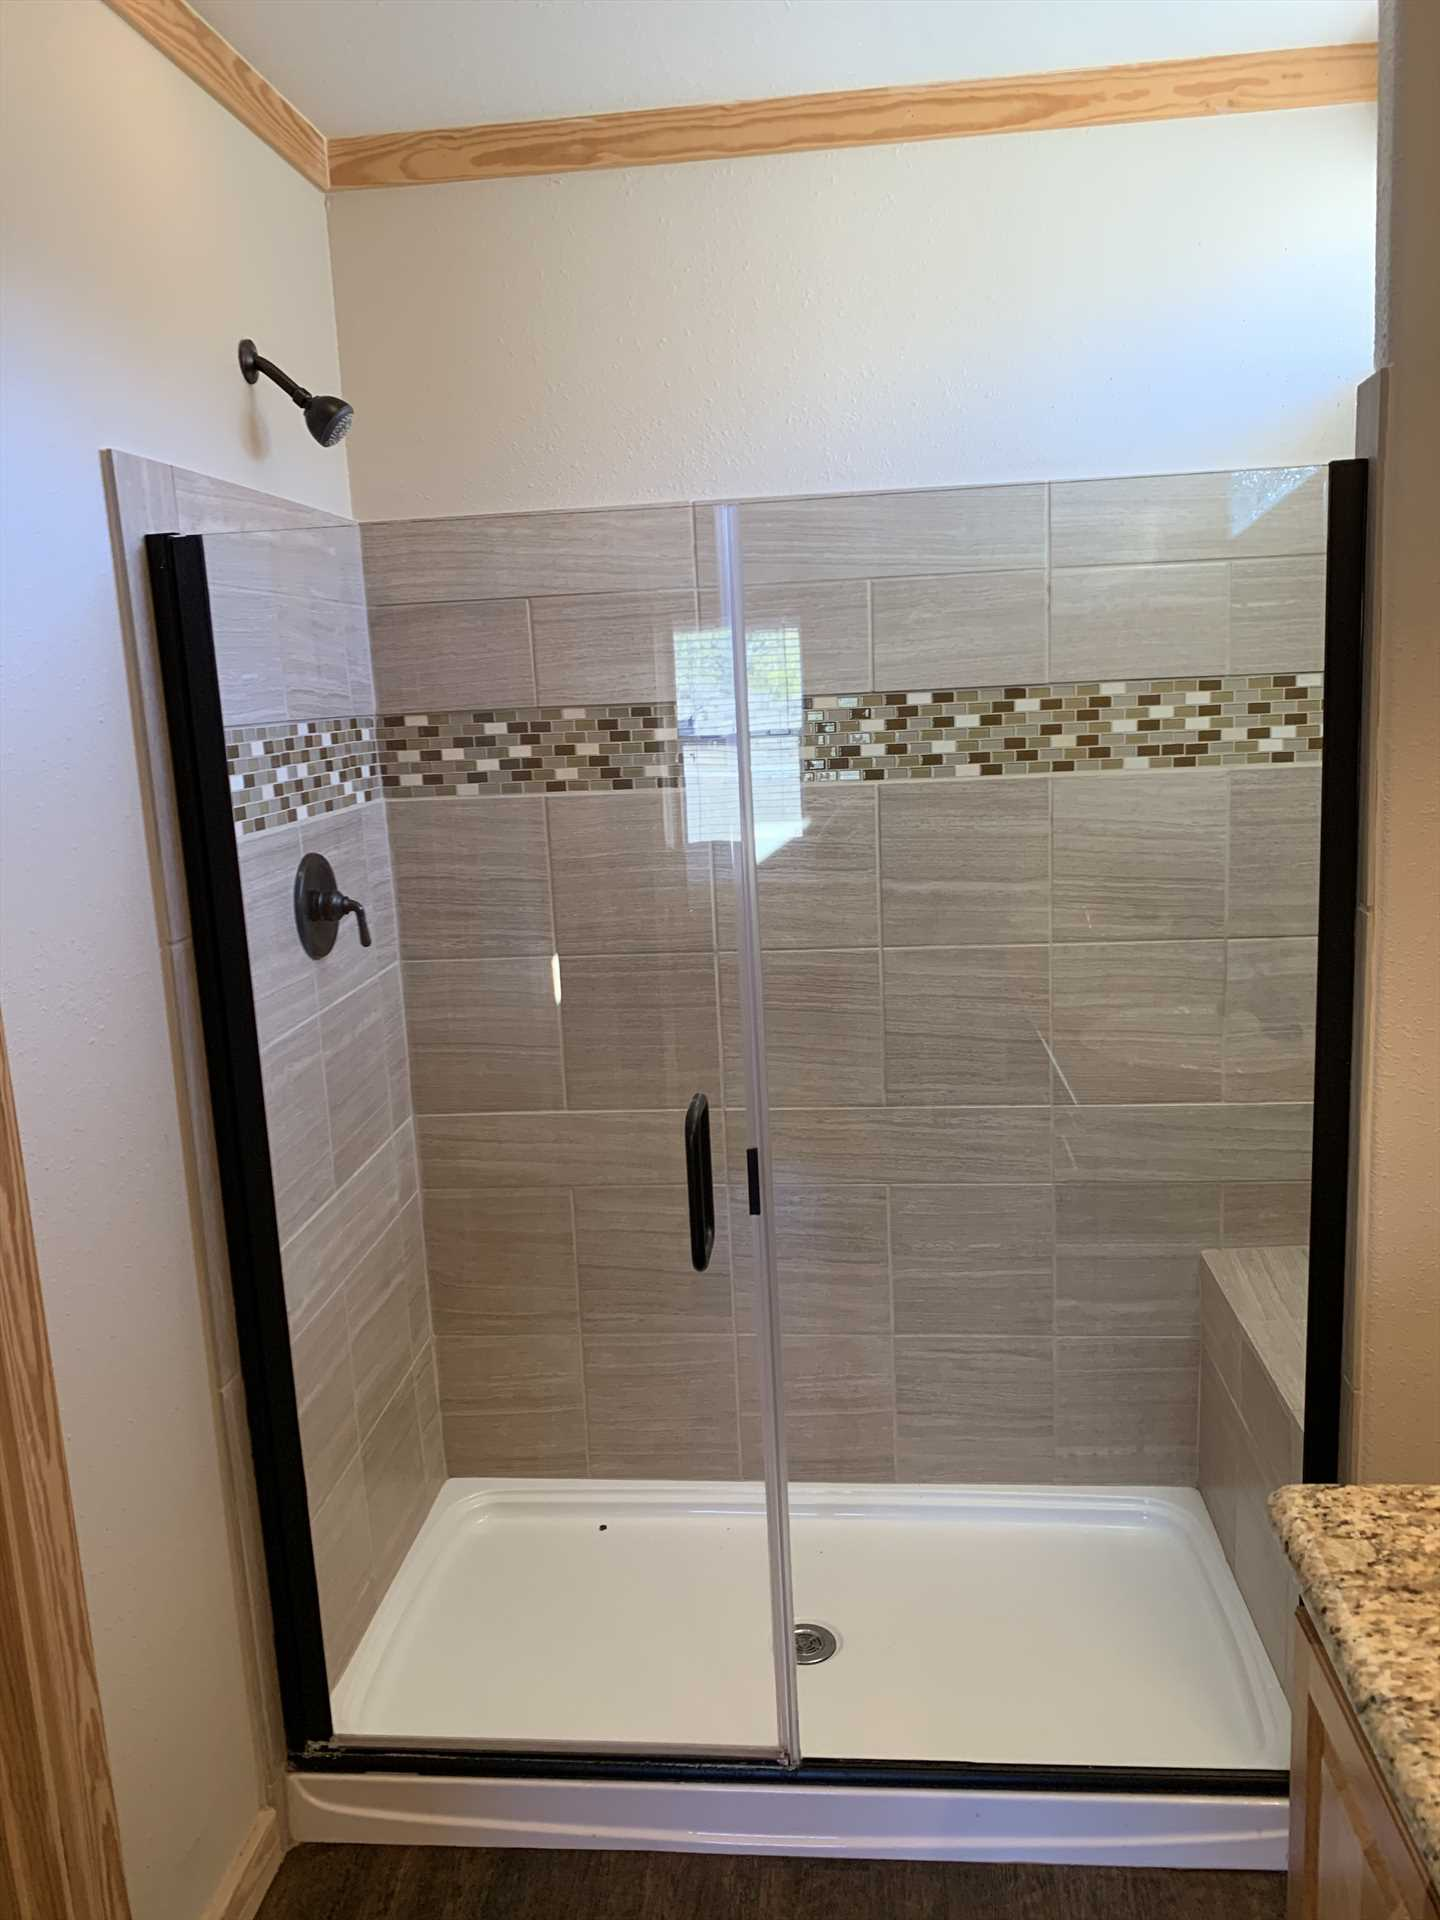 Beautiful tile accents in the master shower add pretty highlights to your roomy cleanup space.